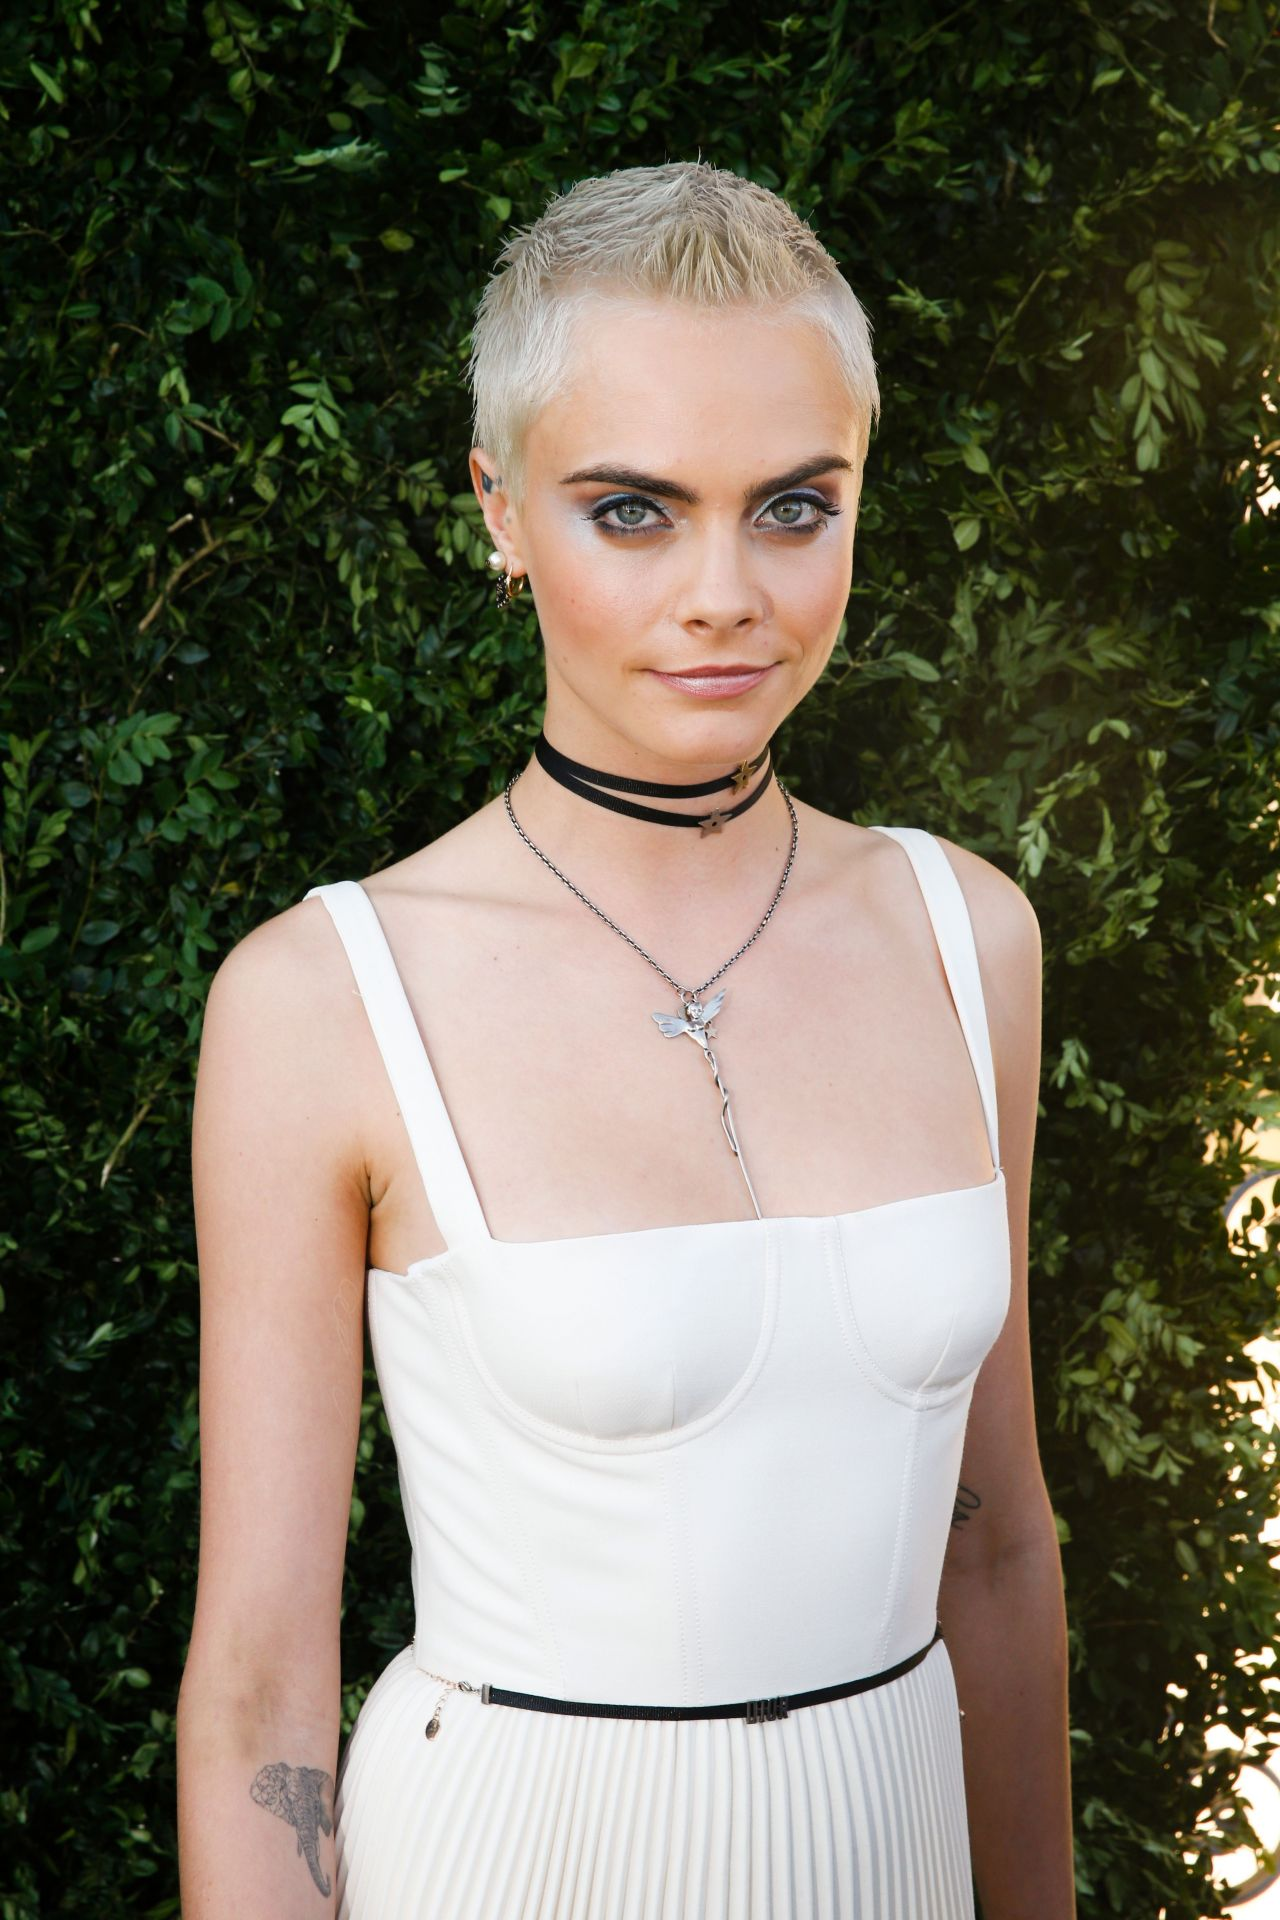 Cara Delevingne  Christian Dior Fall Winter 2017 - Girls Shaved Hairstyles